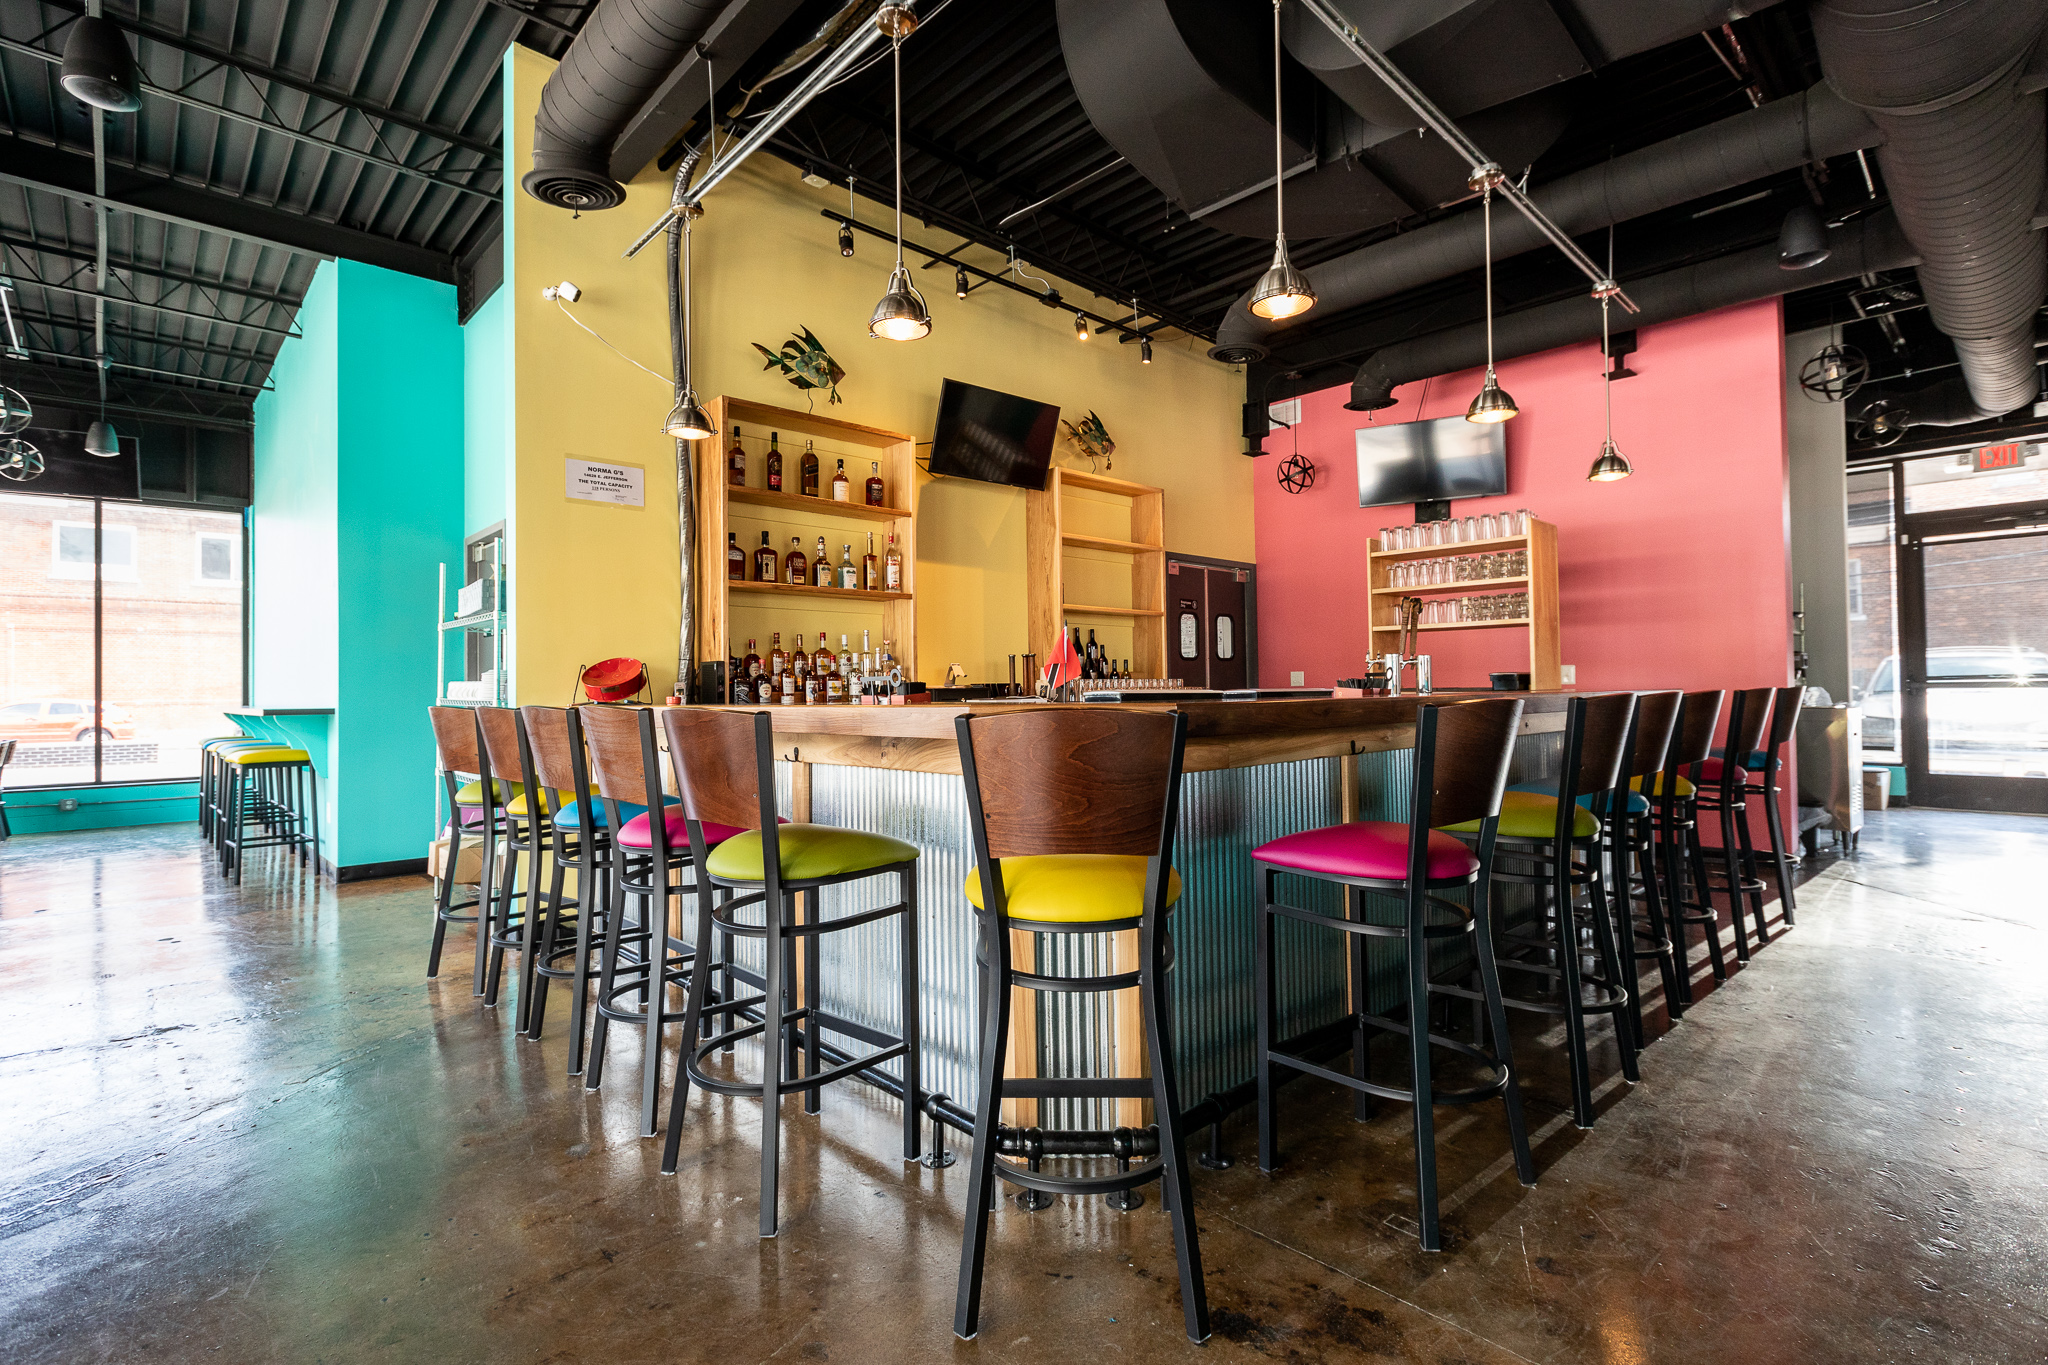 The bar at Norma G's features aqua, yellow, and coral colored walls with similarly colored bar stools.